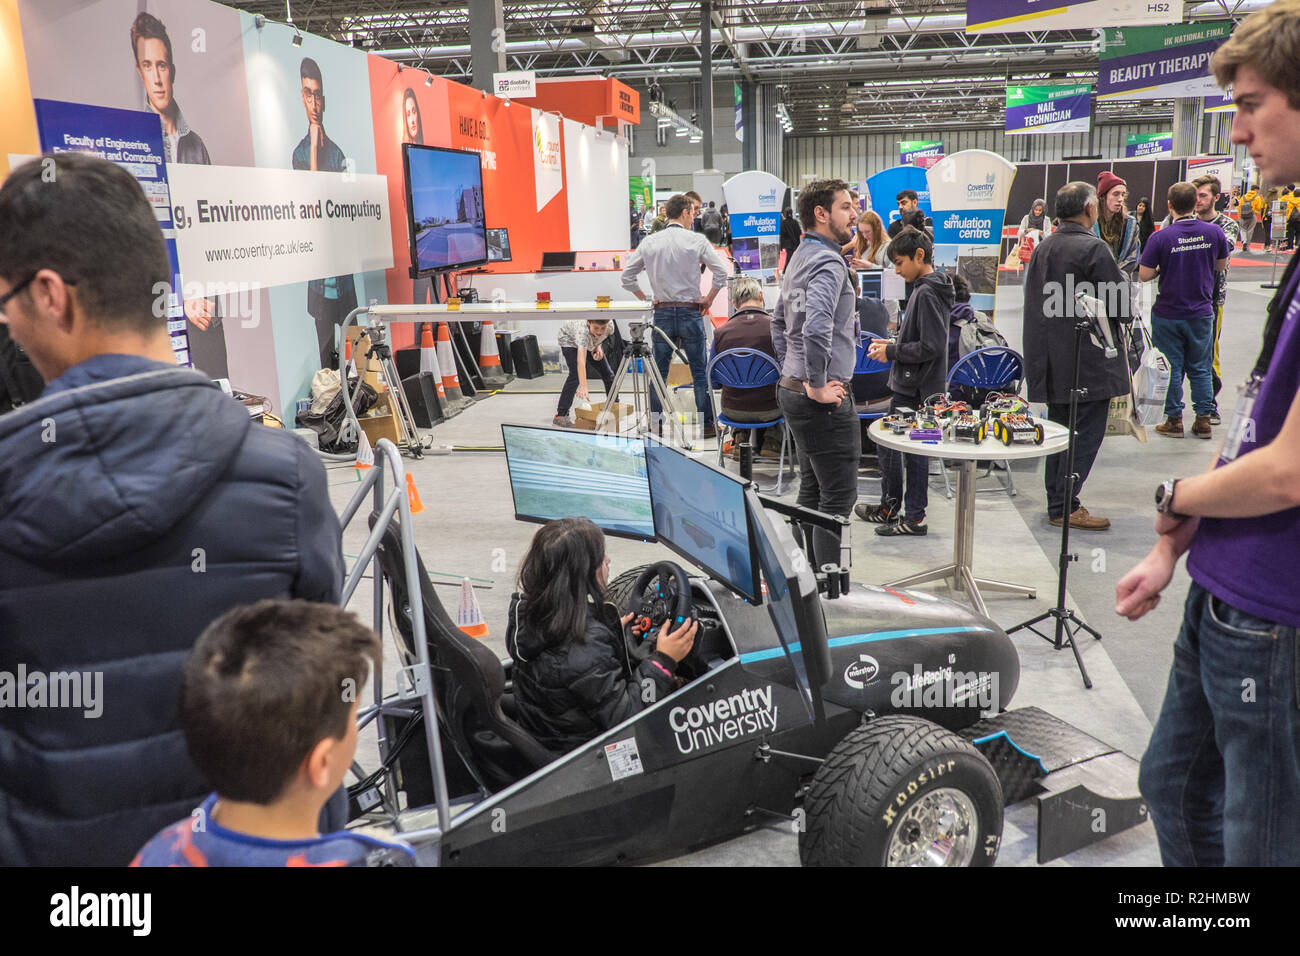 WorldSkills, UK Live 2018,formerly,Skills Show,is,the UK's largest skills, apprenticeships, and, careers, event, held at NEC, Birmingham,England,UK. - Stock Image